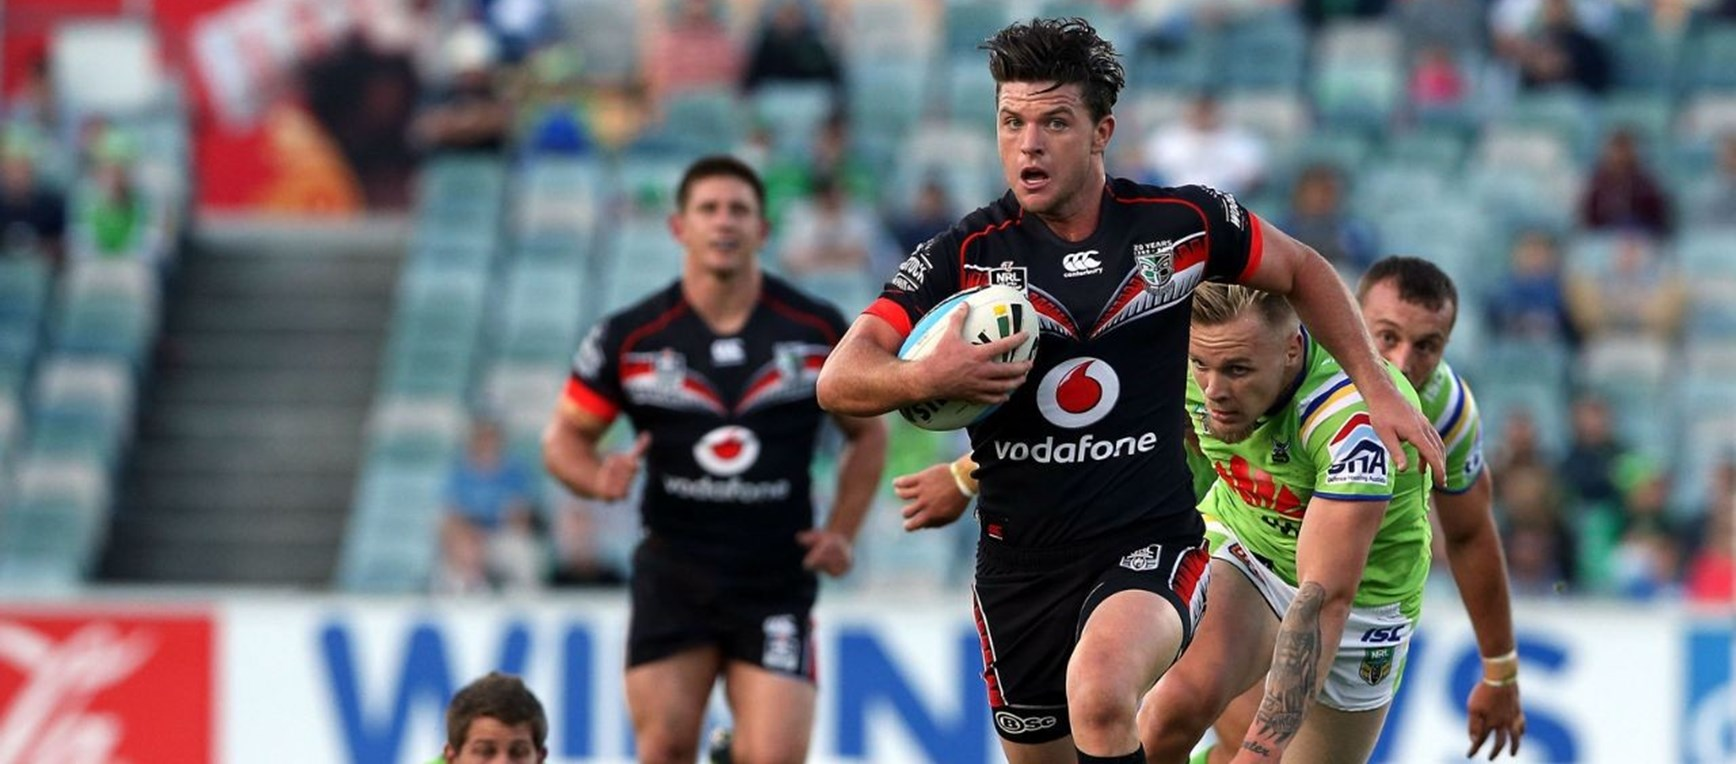 IN PICTURES | Vodafone Warriors v Raiders